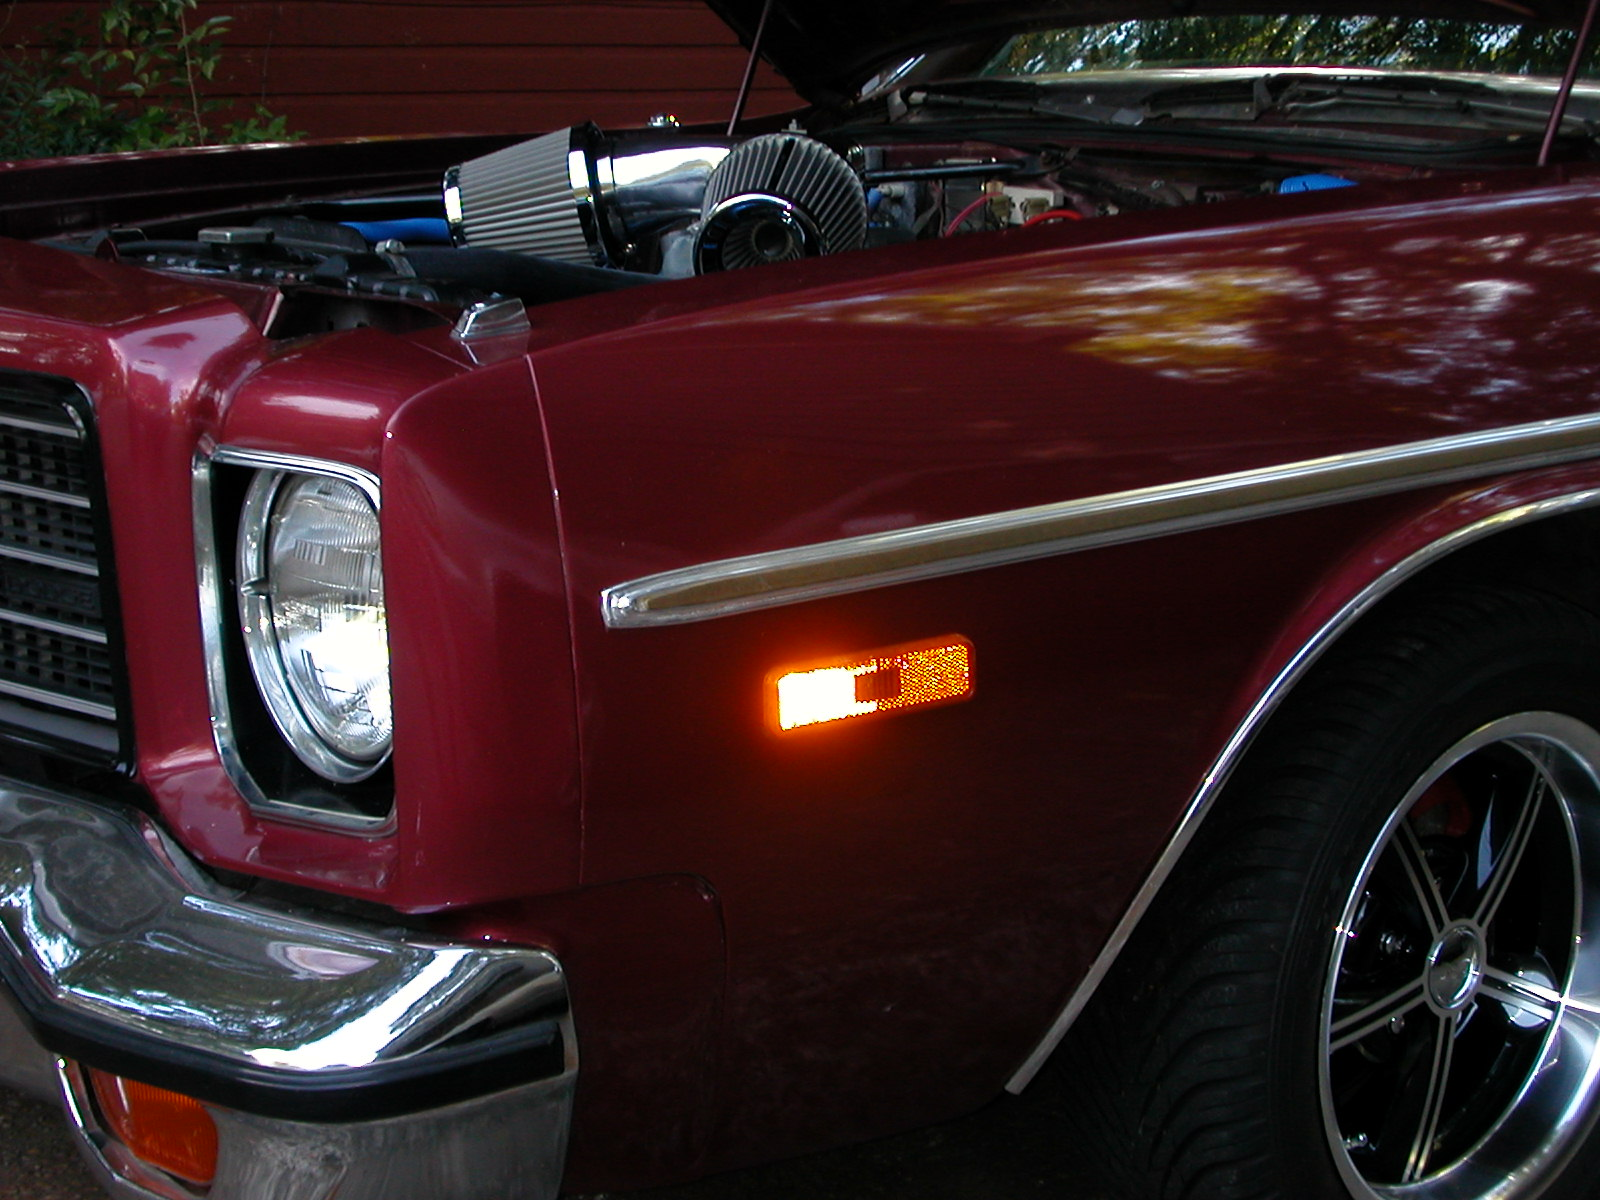 1976 Dodge Coronet picture, engine, exterior